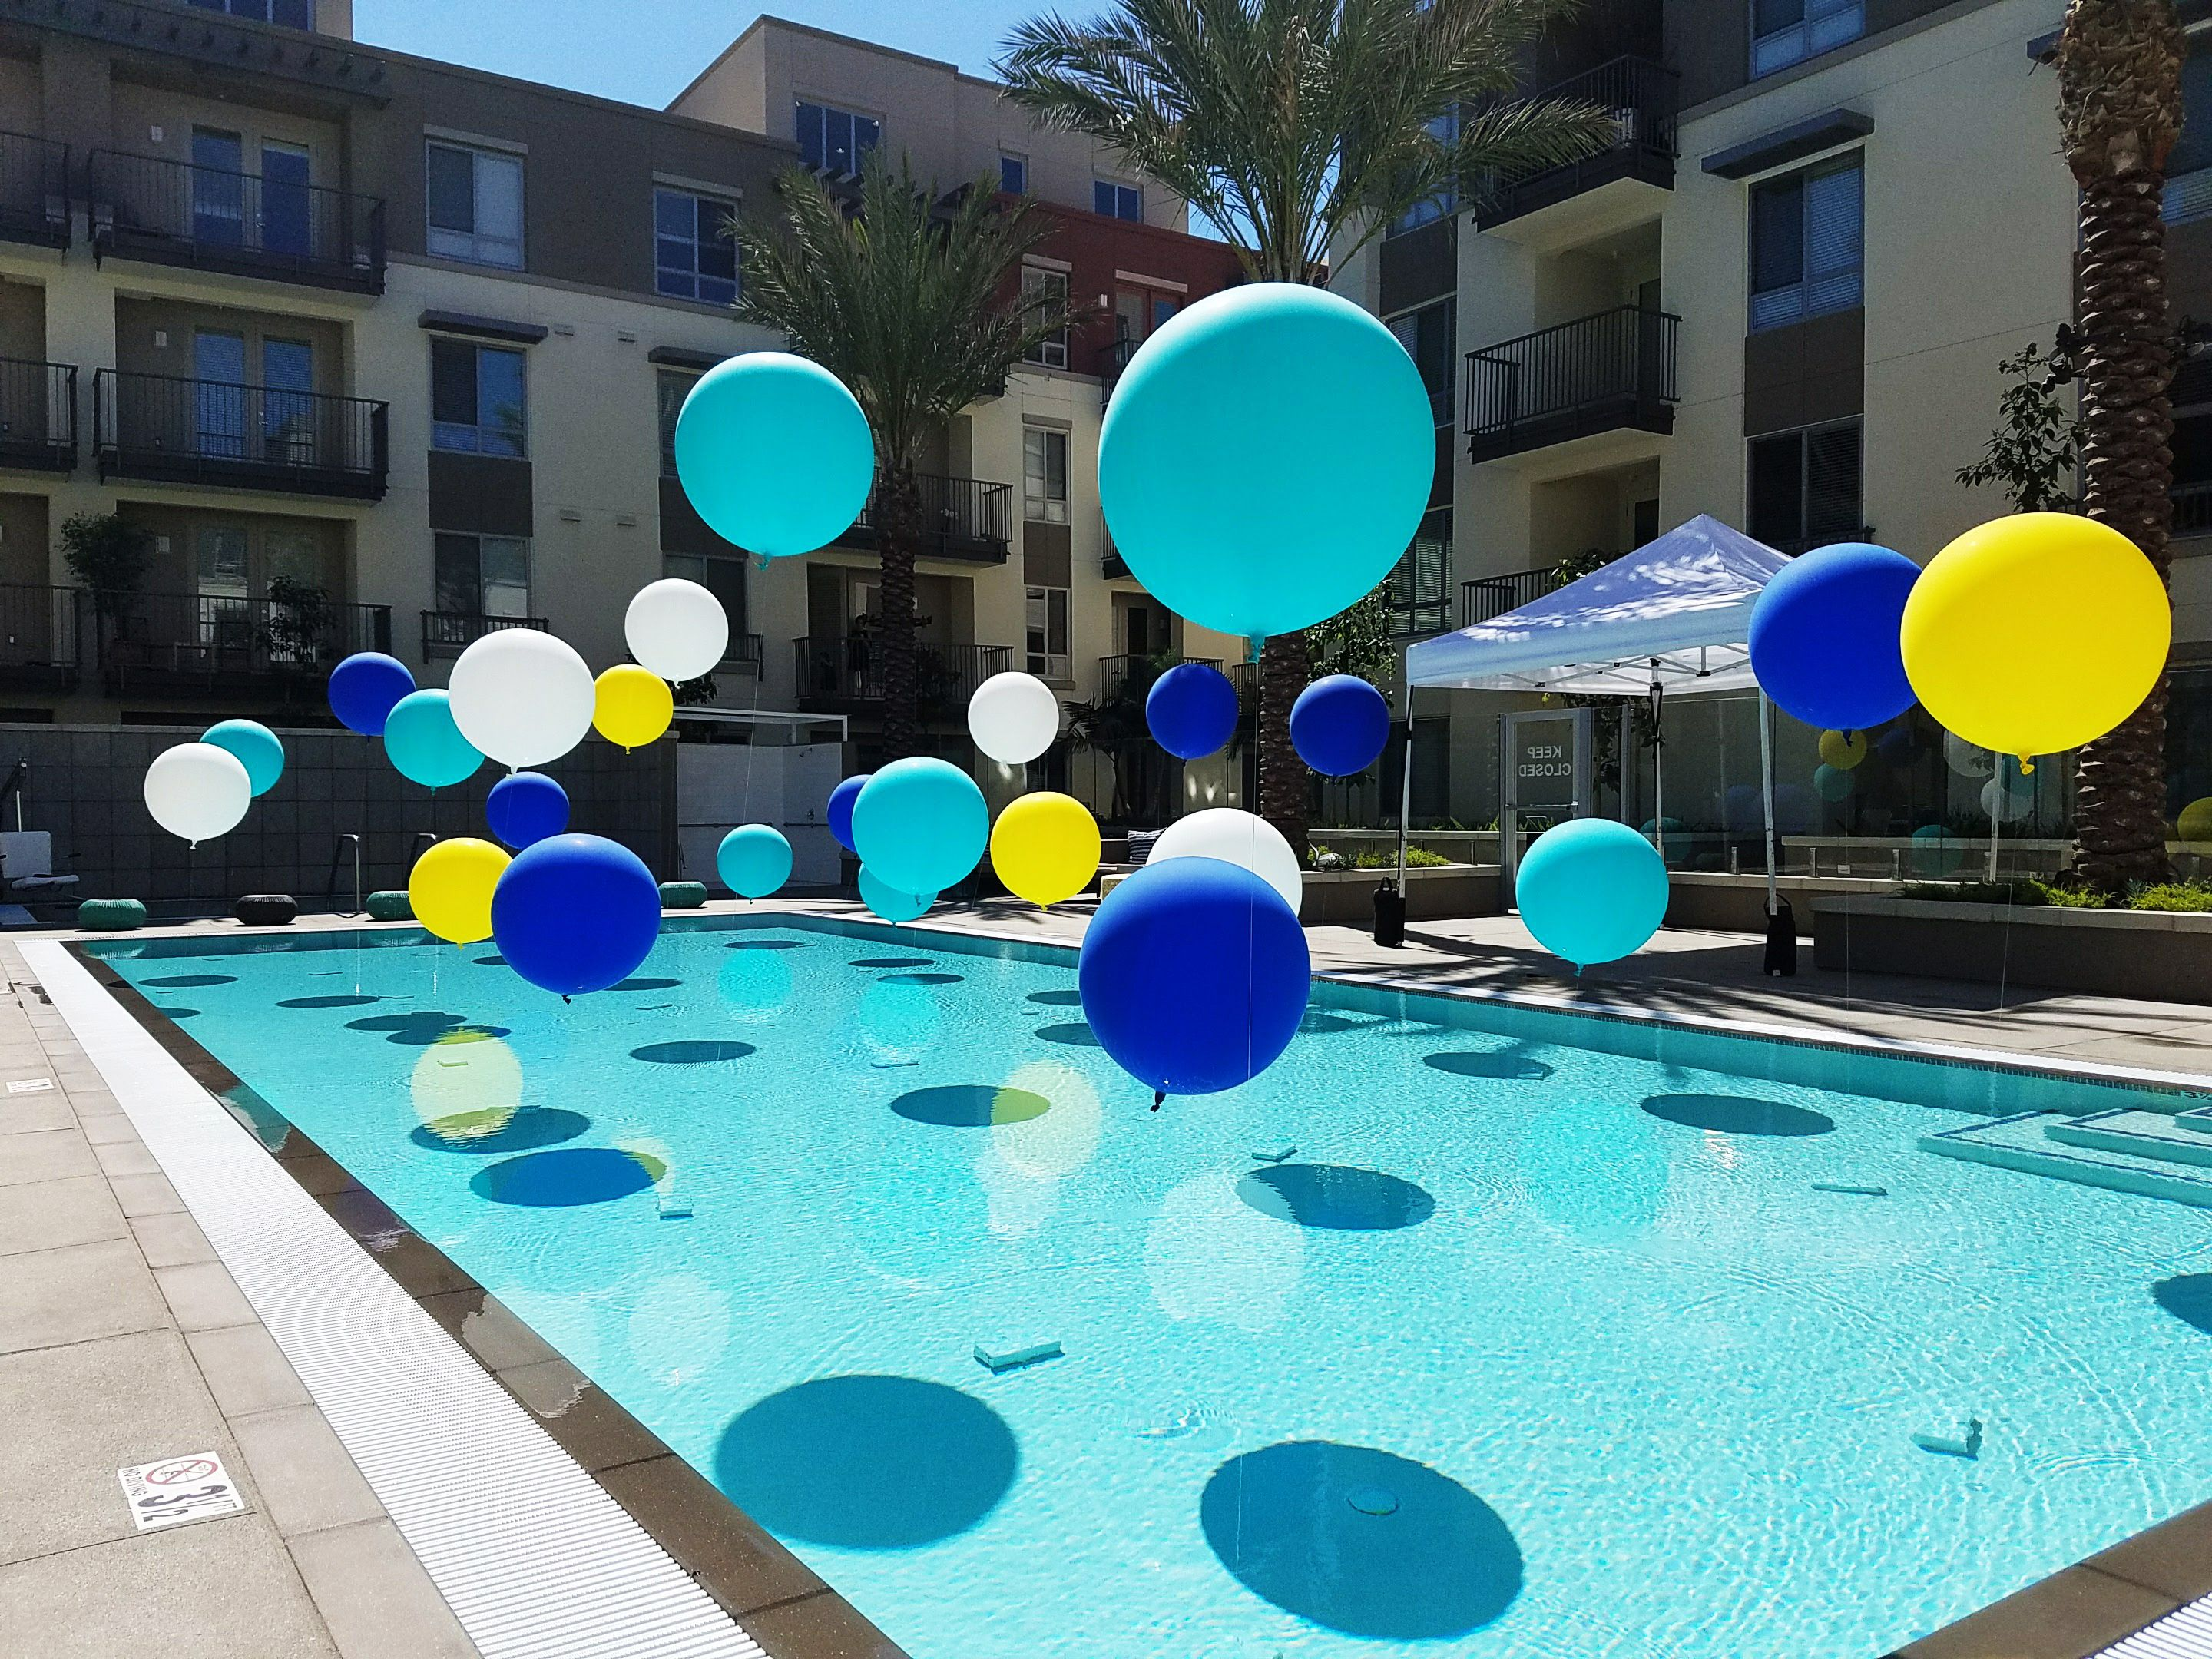 Pool Balloons Summer Party Pool Party Party Ideas Backyard Pool Parties Pool Birthday Party Backyard Party Decorations